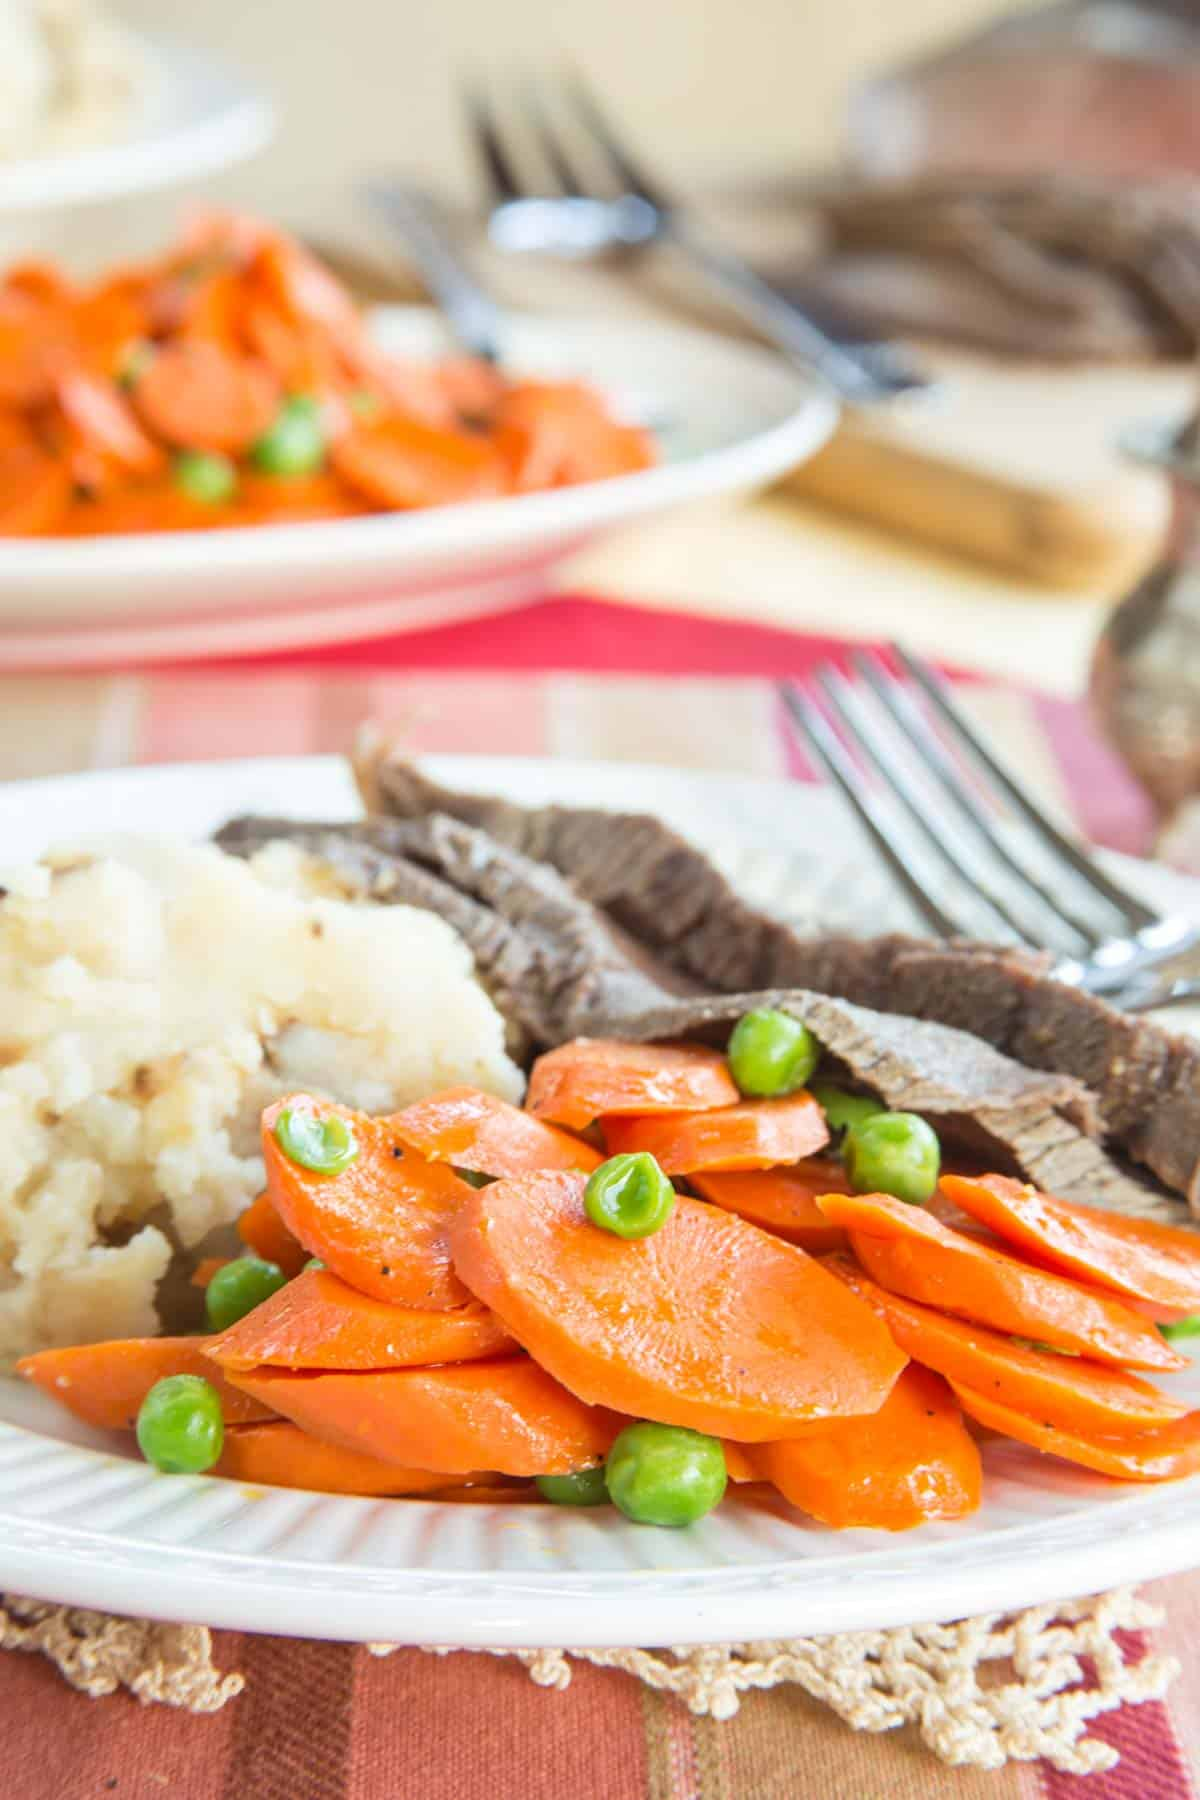 Brown Buttered Peas and Carrots on a plate with steak and mashed potatoes